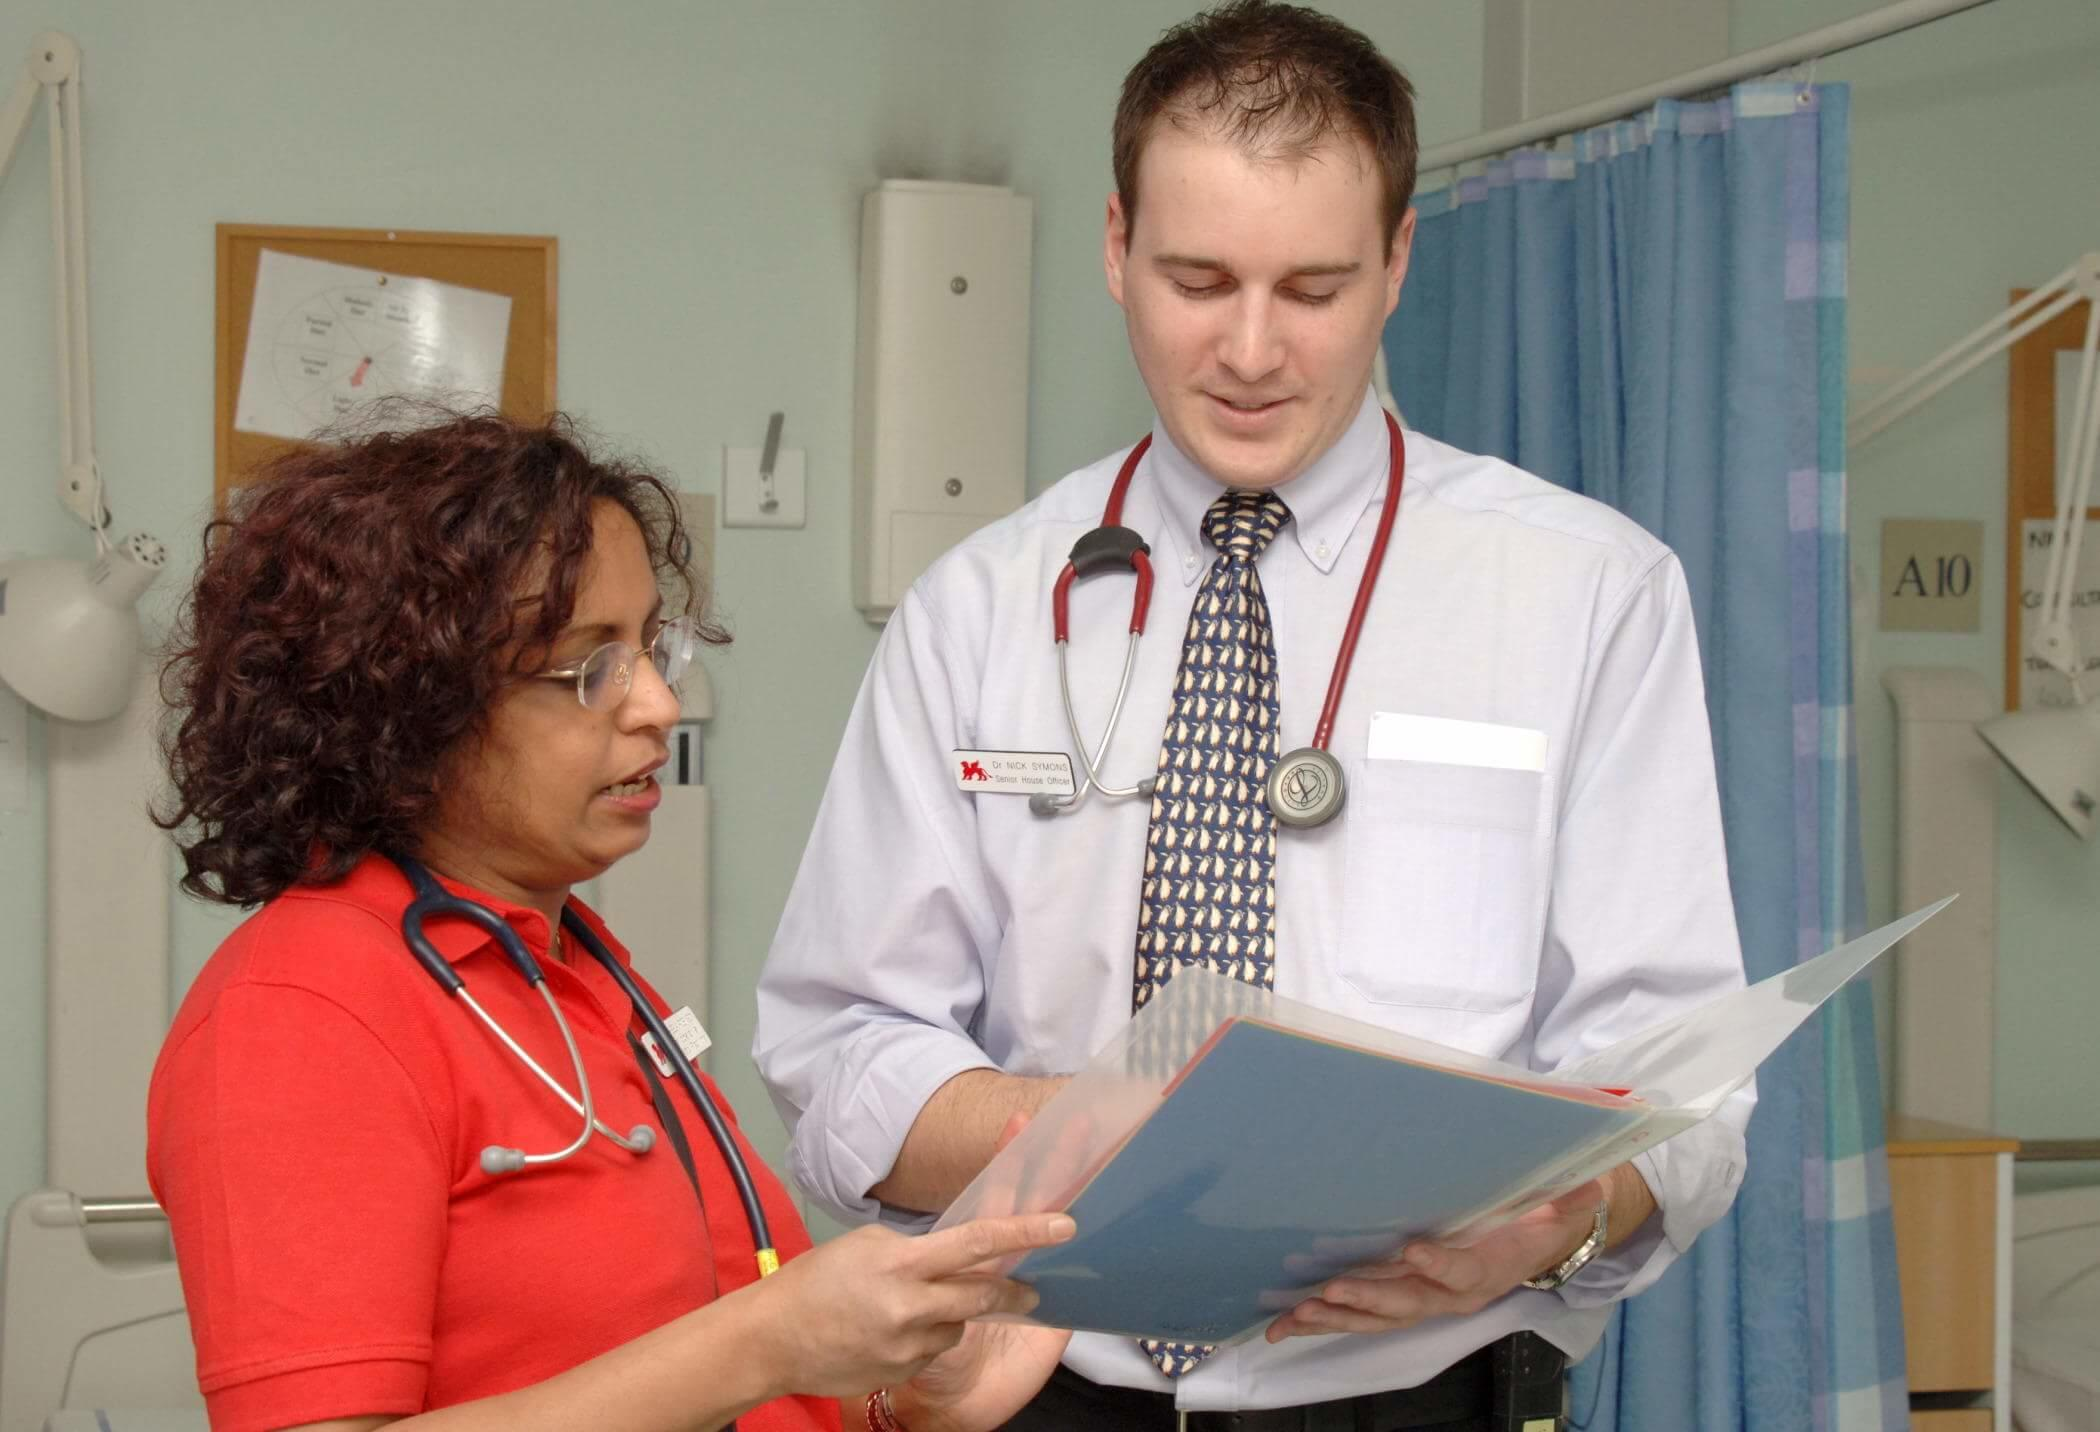 Doctors discussing notes